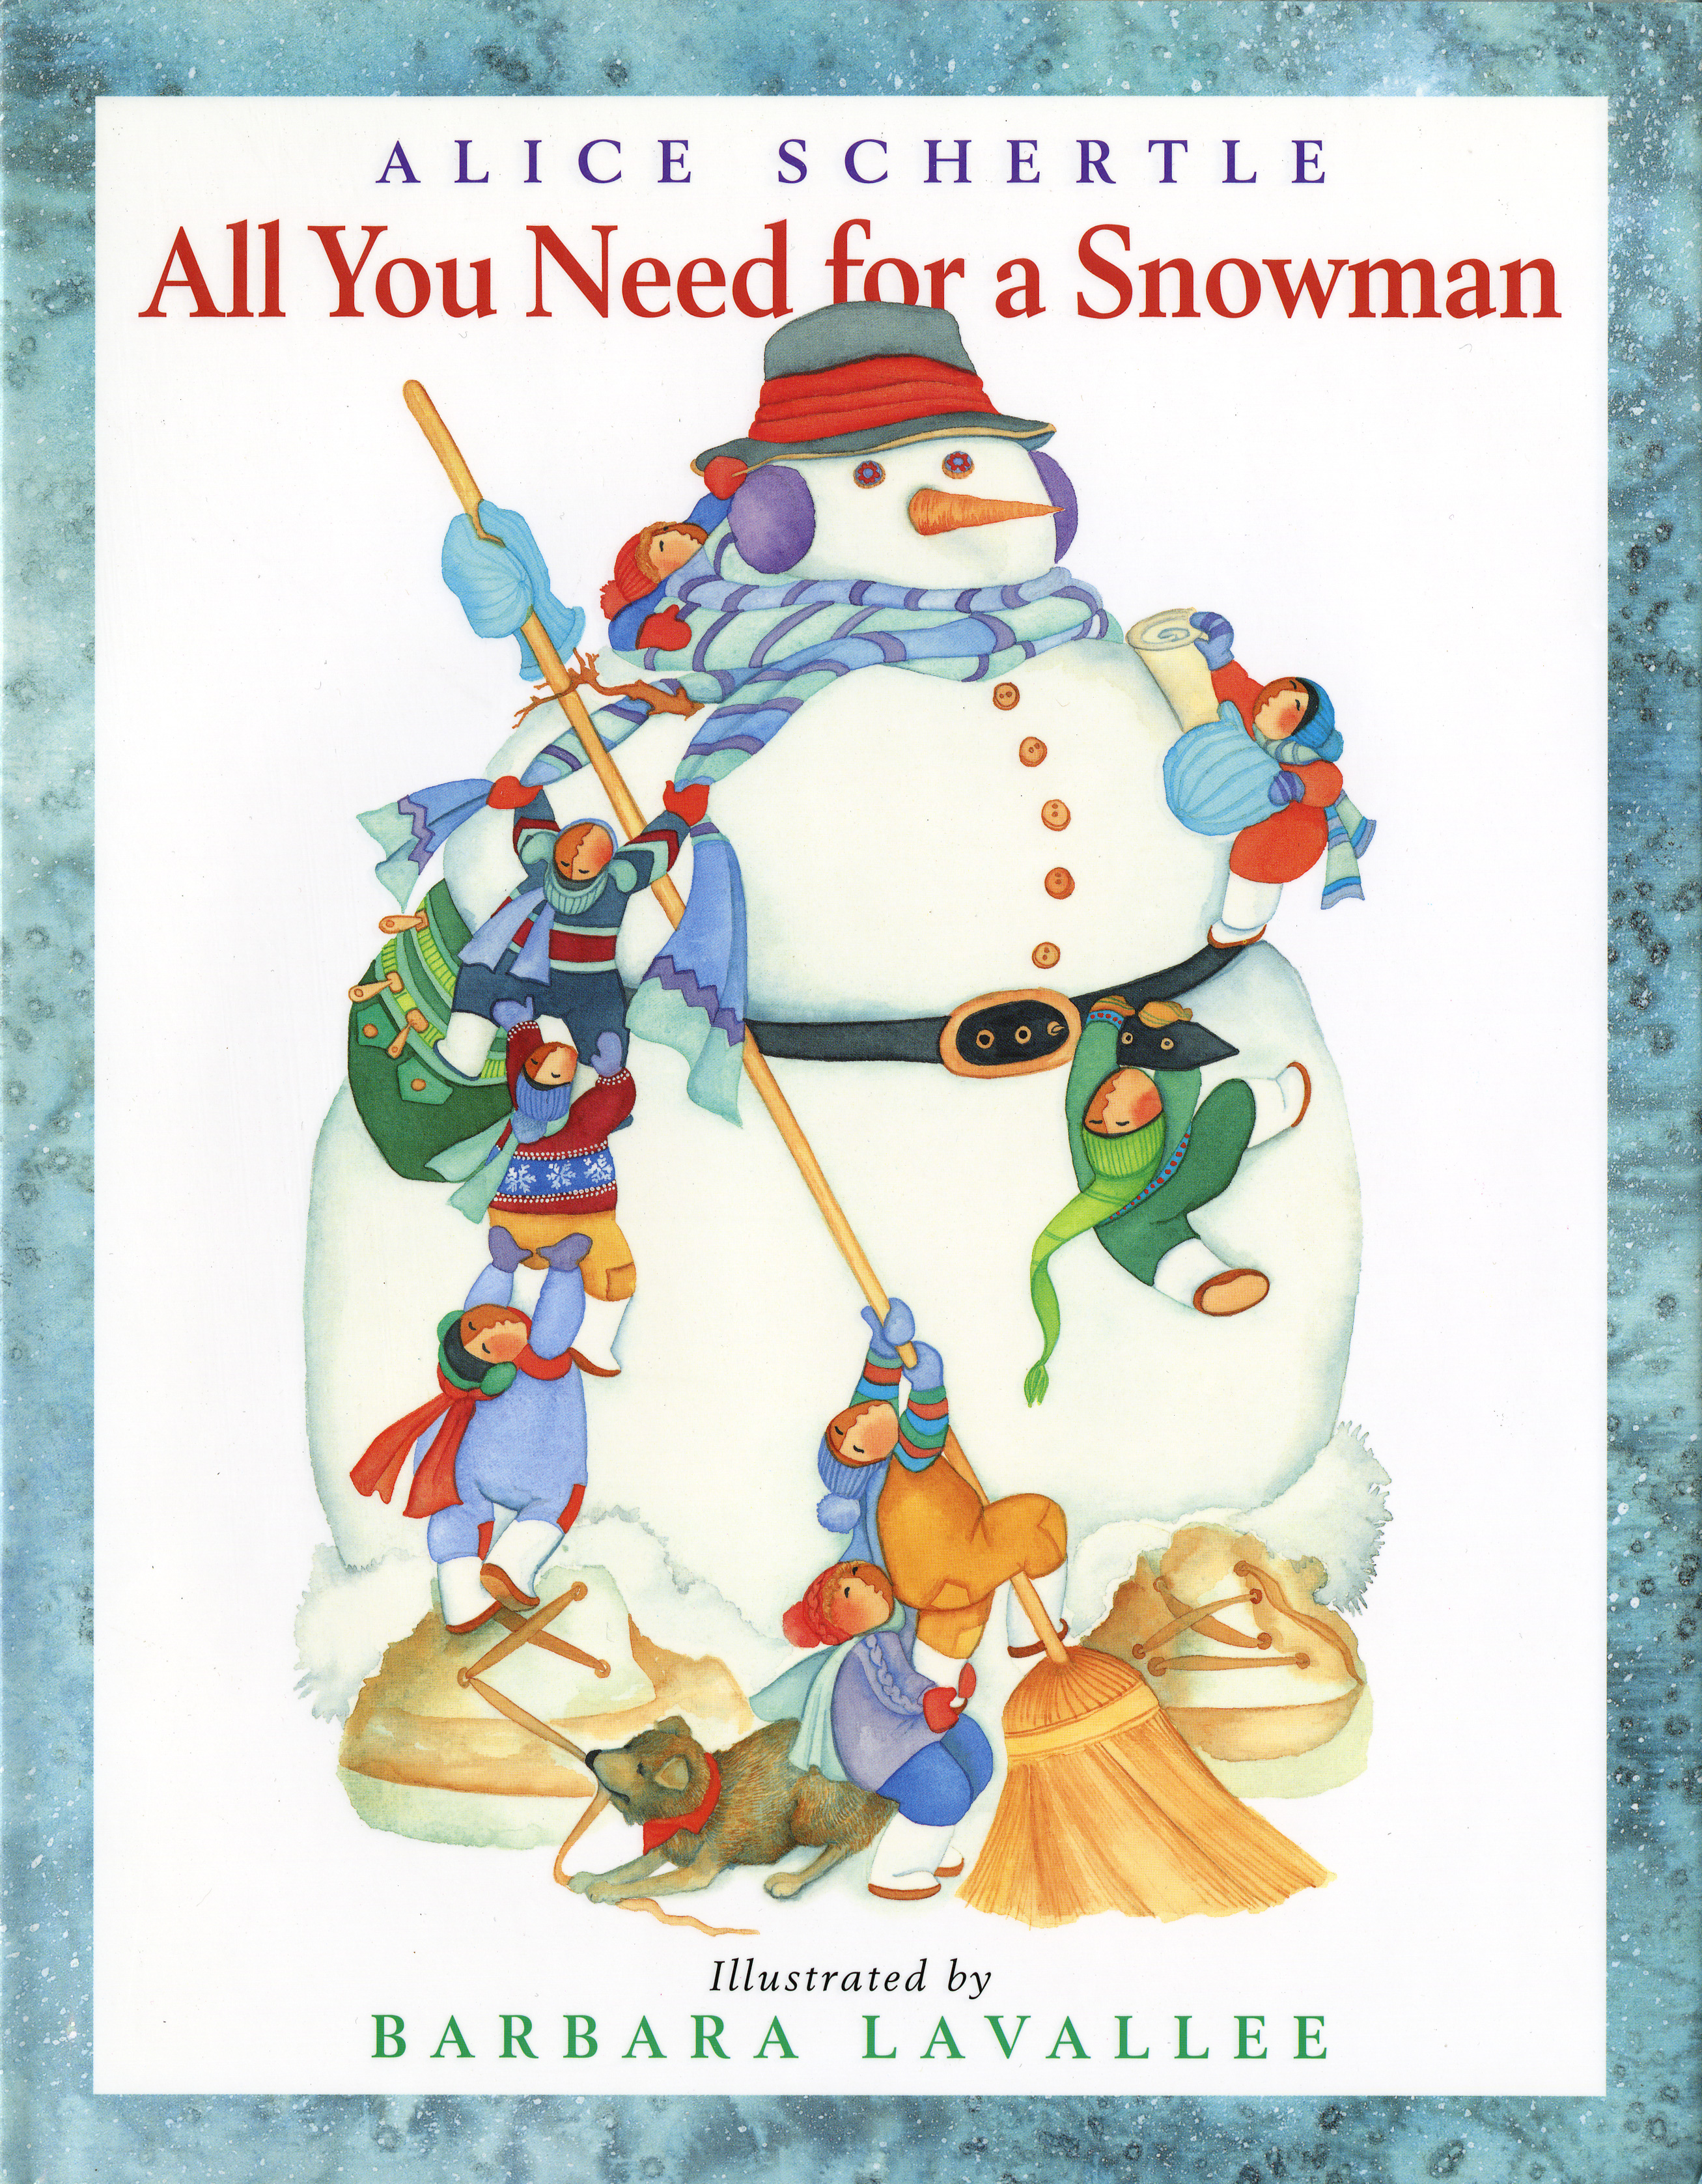 All You Need for a Snowman-9780152061159